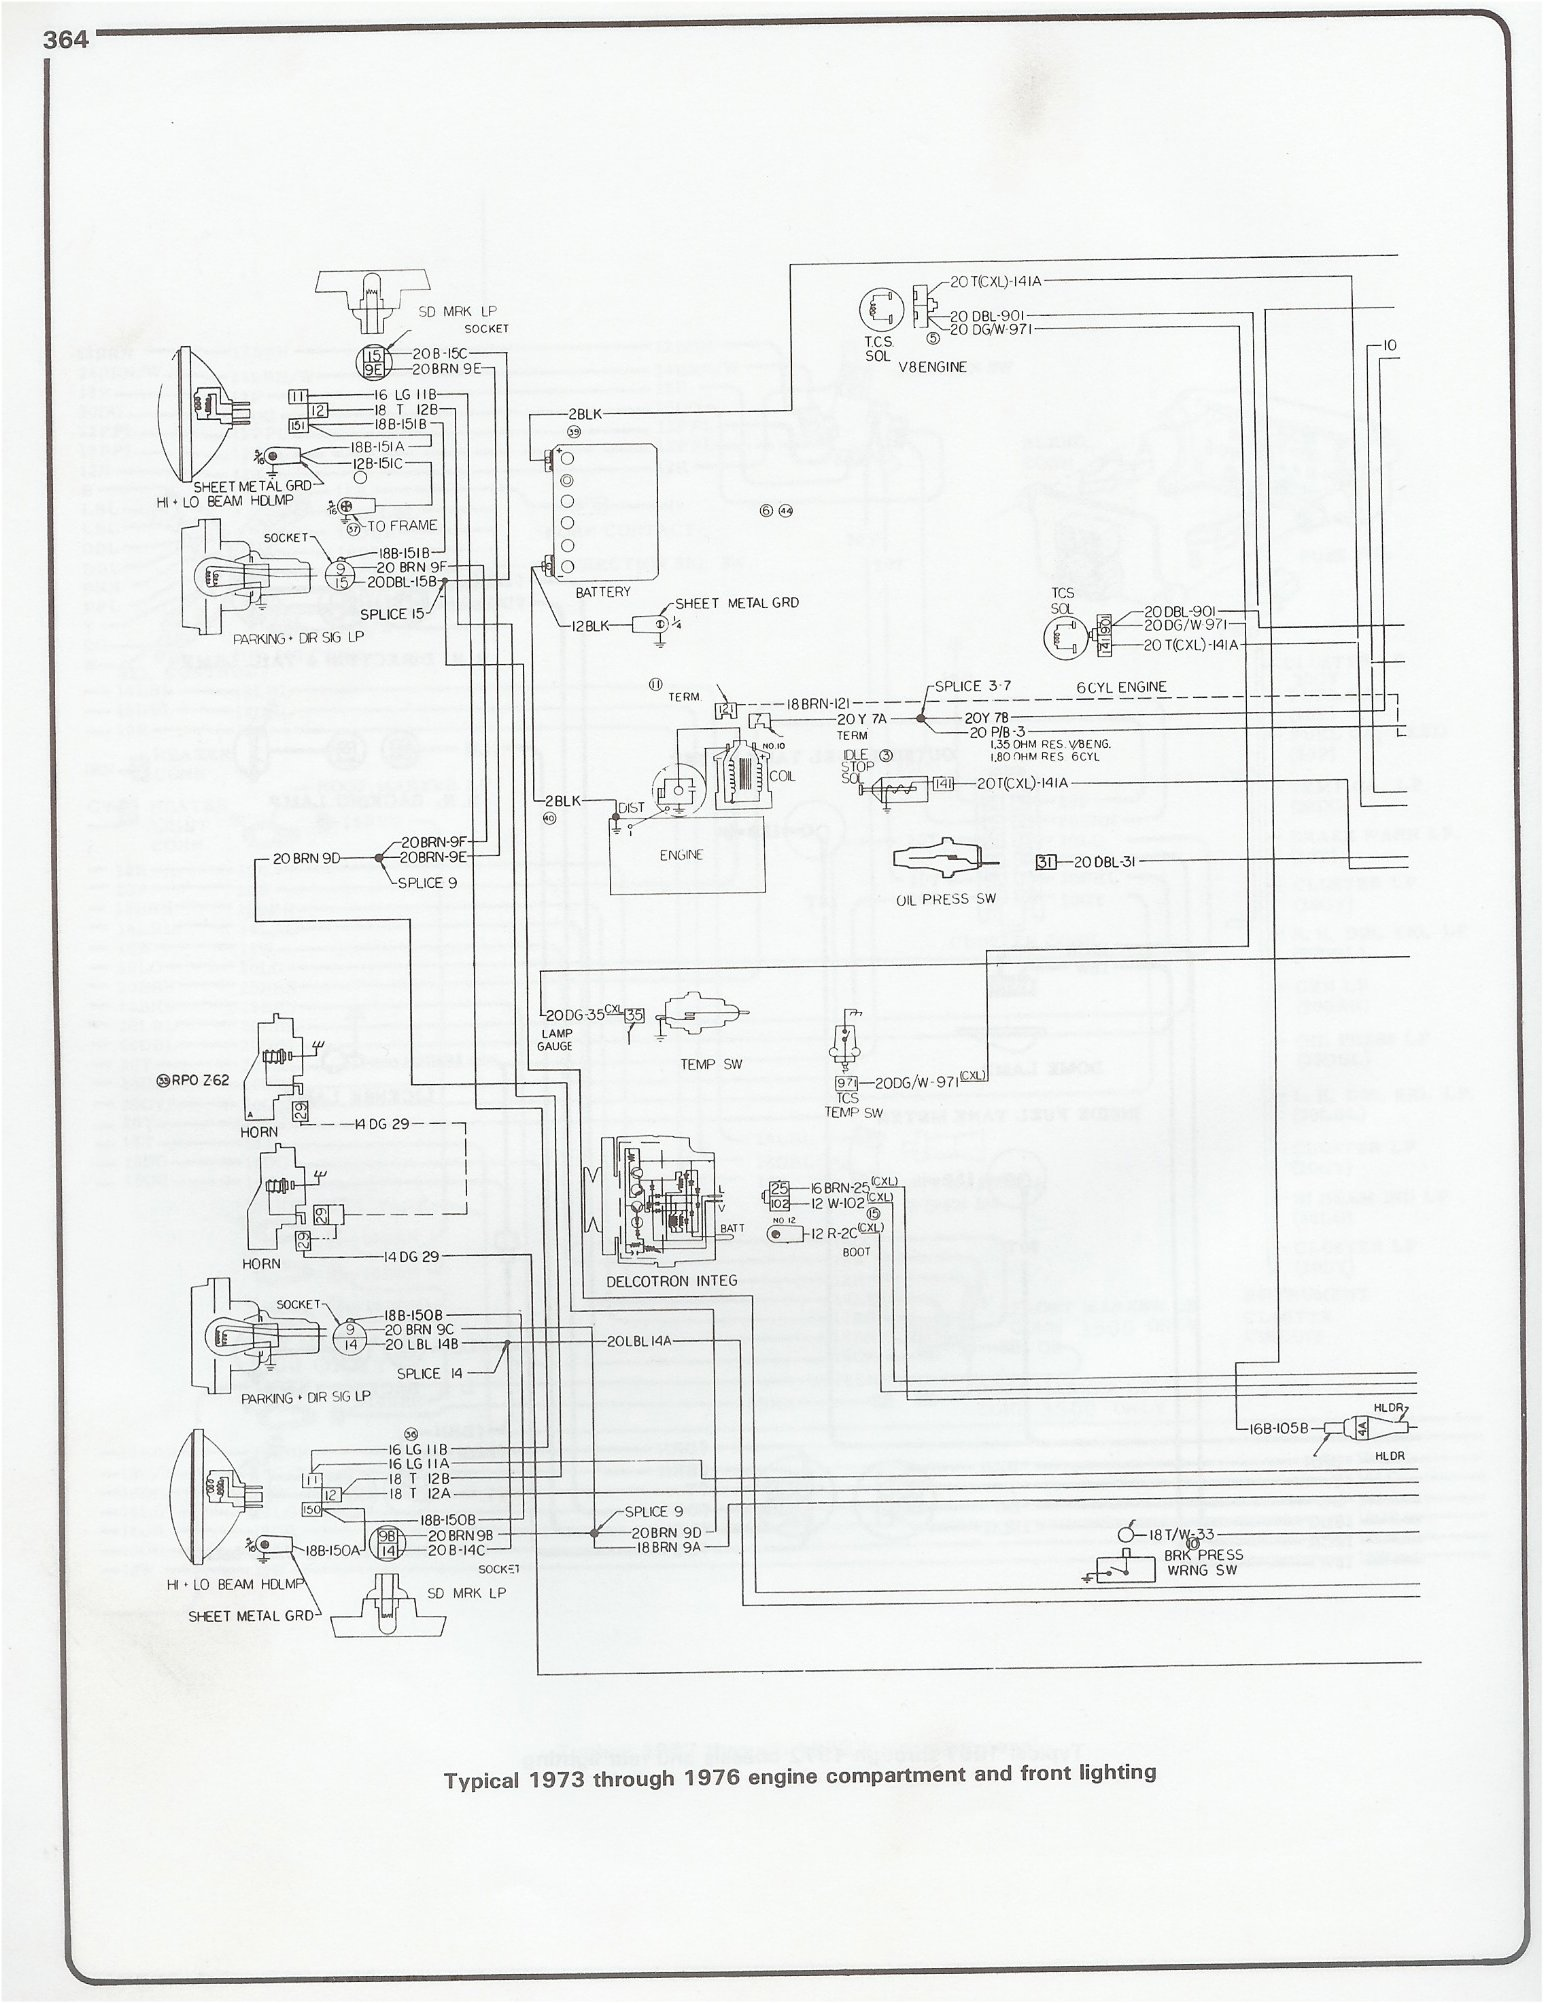 wiring diagram 1973 1976 chevy pickup chevy wiring diagram wiring diagram 1973 1976 chevy pickup chevy wiring diagram